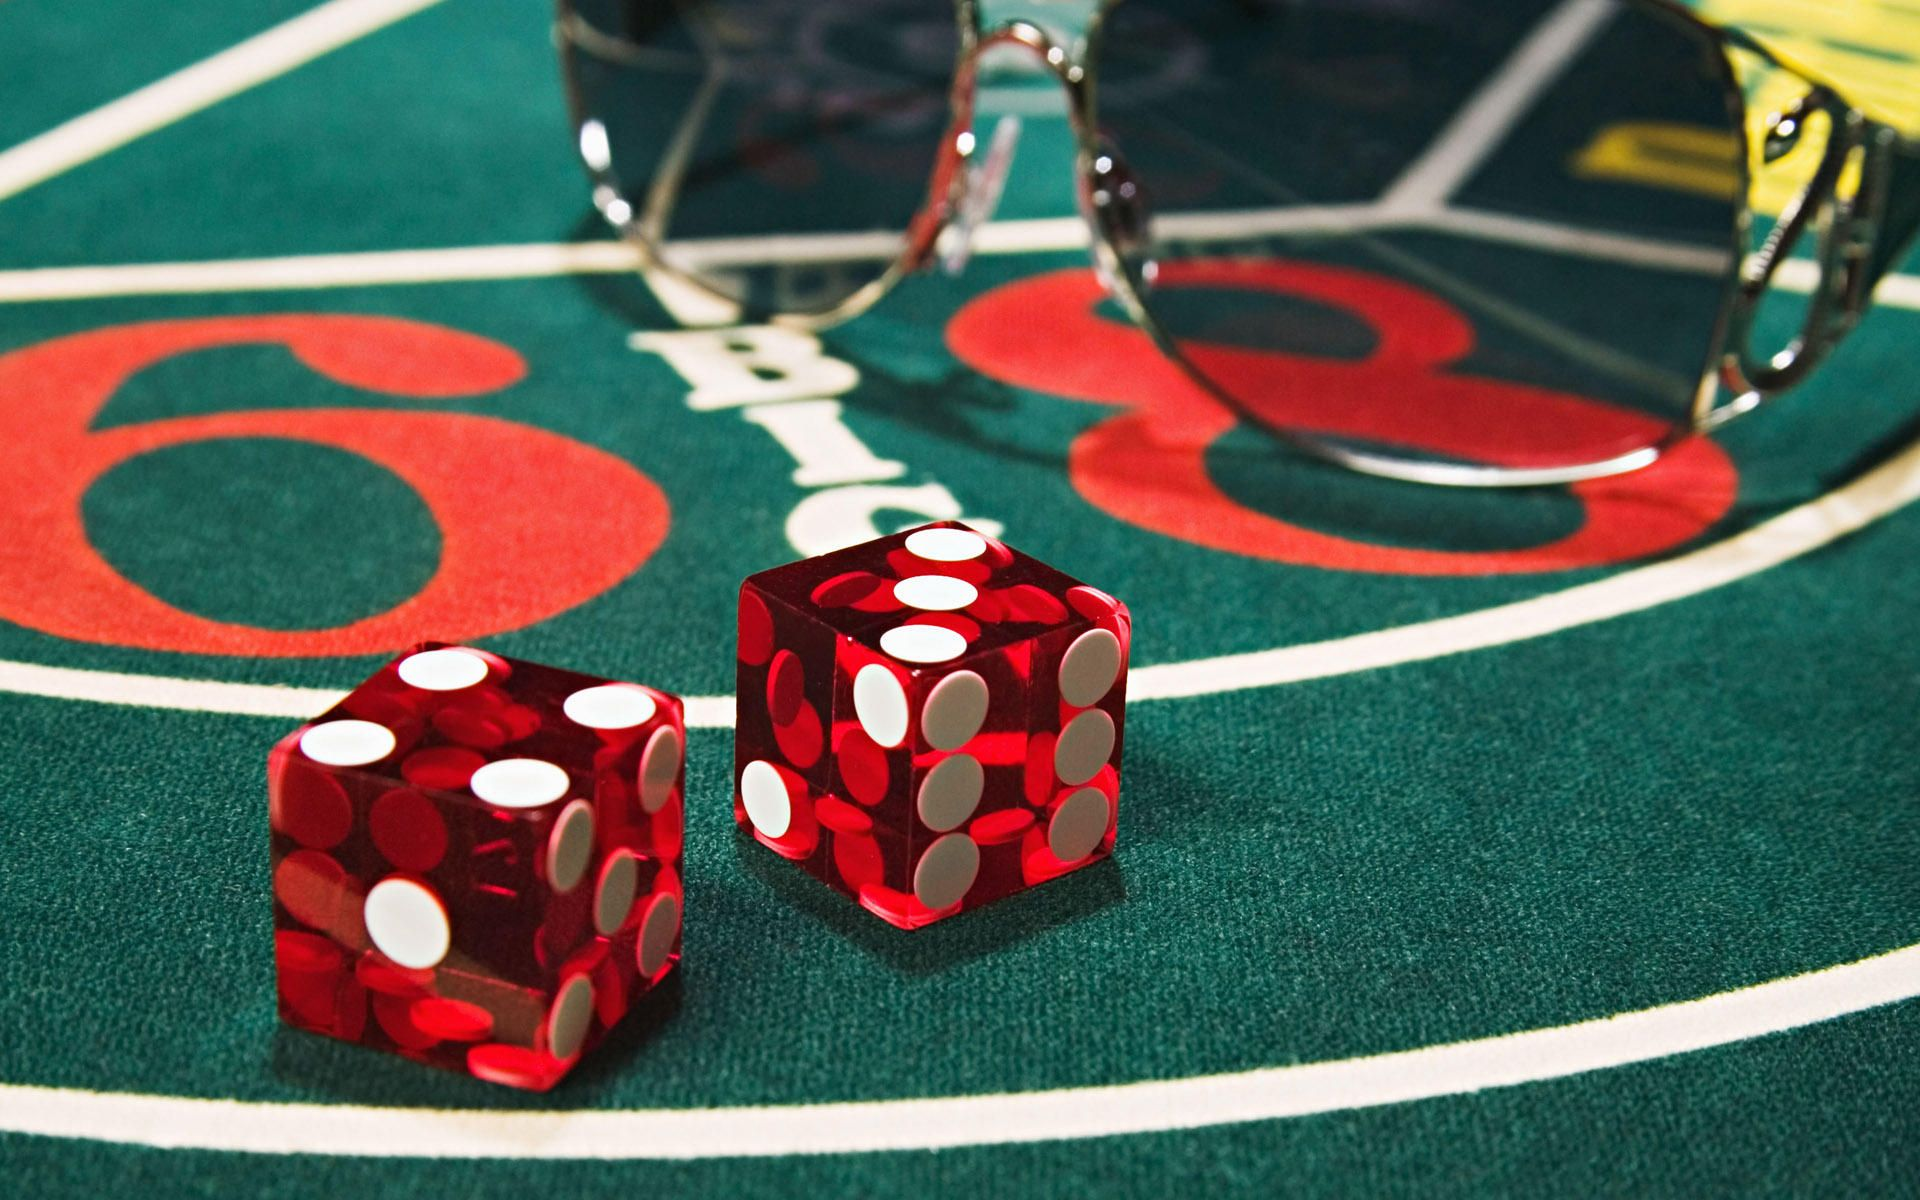 If Online Gambling Is So Unhealthy, Why Don't Statistics Show It